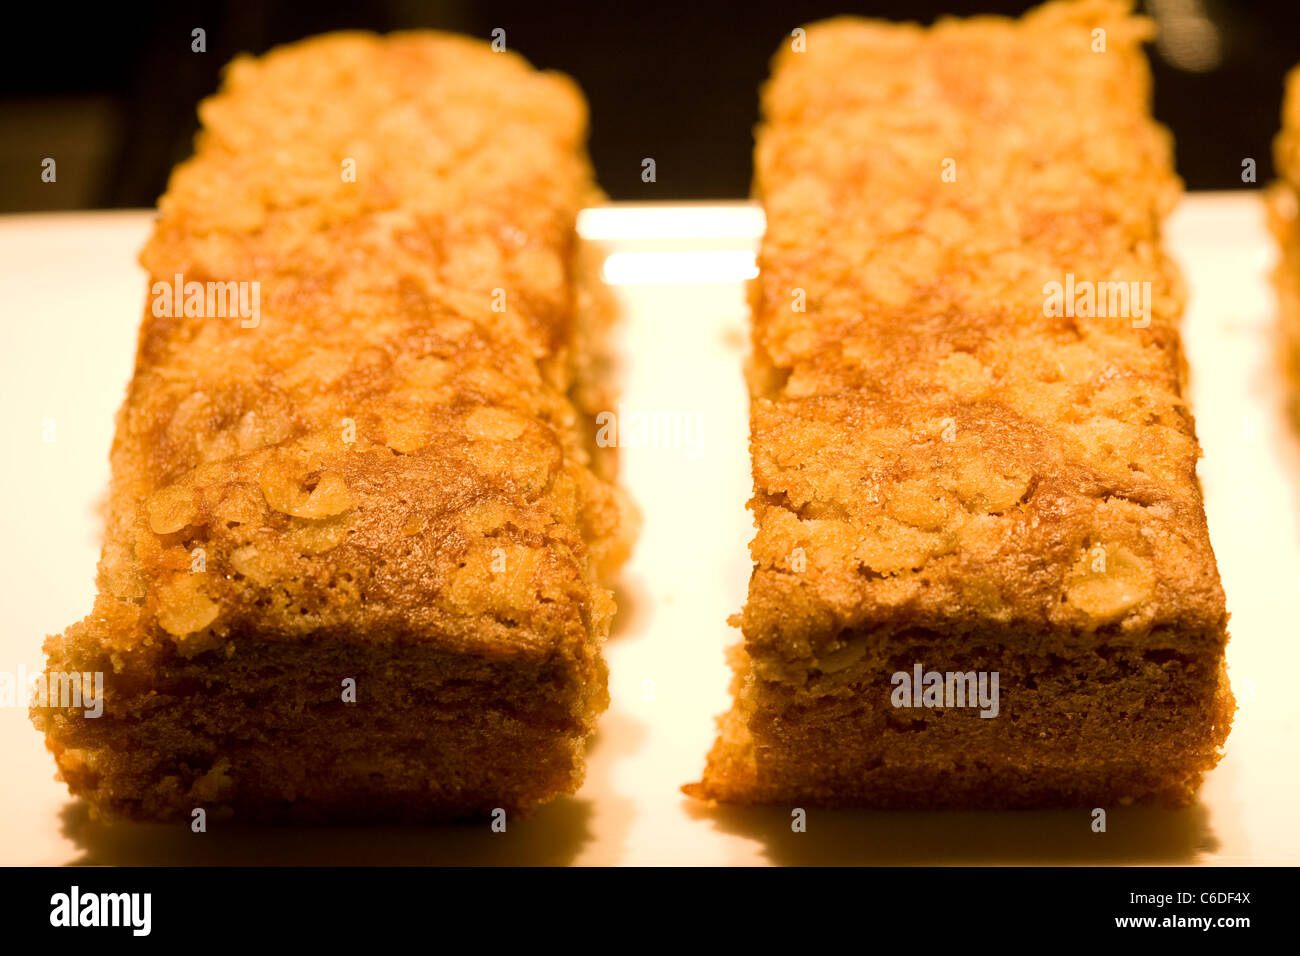 two pieces of cake arranged on a white rectangular plate - Stock Image